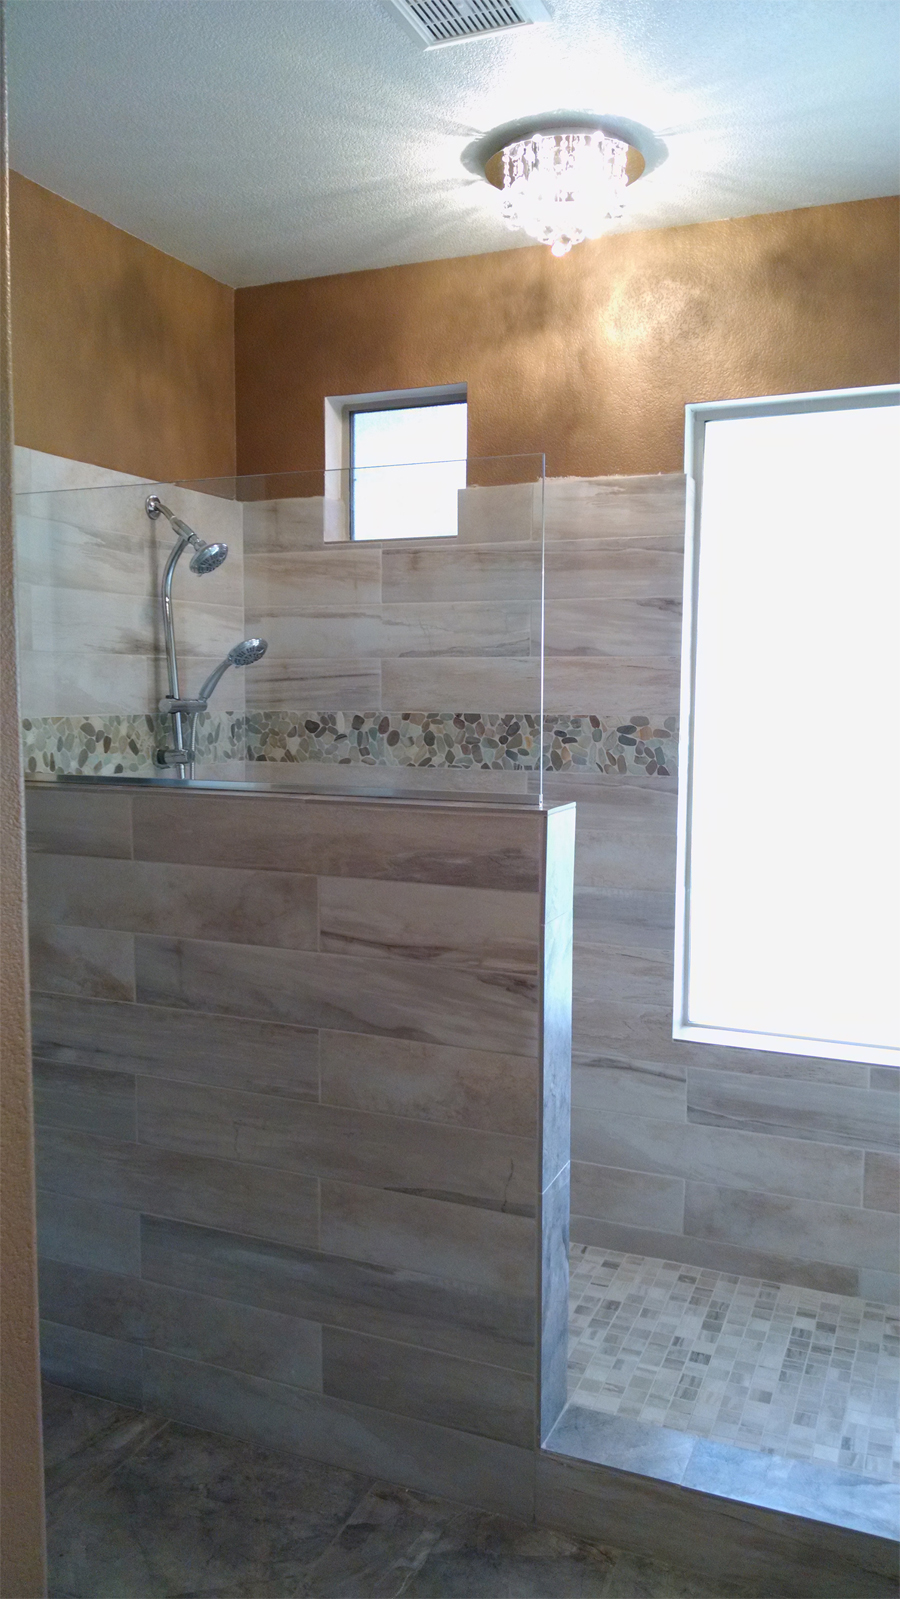 Phoenix Bathroom Remodel Adorable Home Remodeling Phoenix  Champion Remodeling Llc. Review